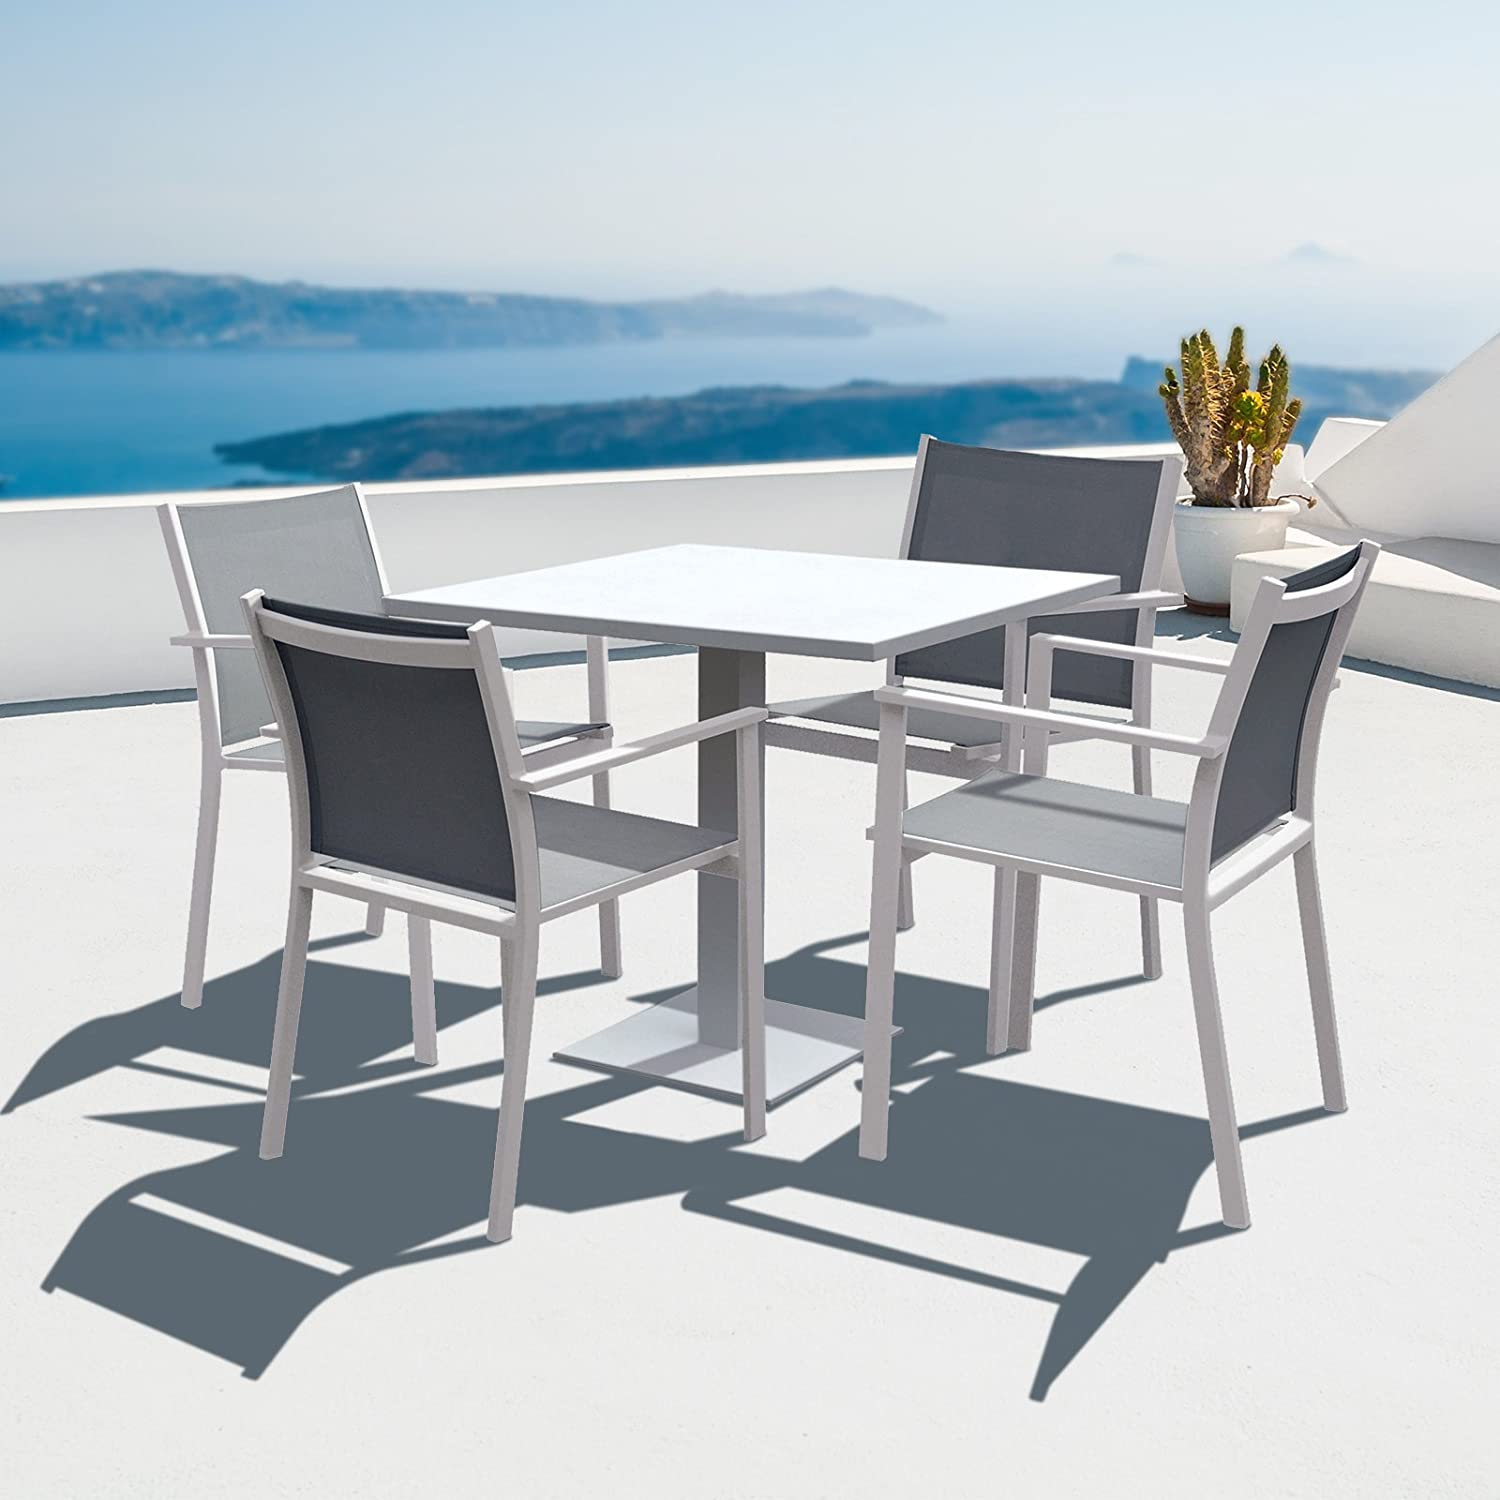 Cozy Bay 4 Seater Verona Aluminium And Textilene Dining Set  # Muebles Seys Verona